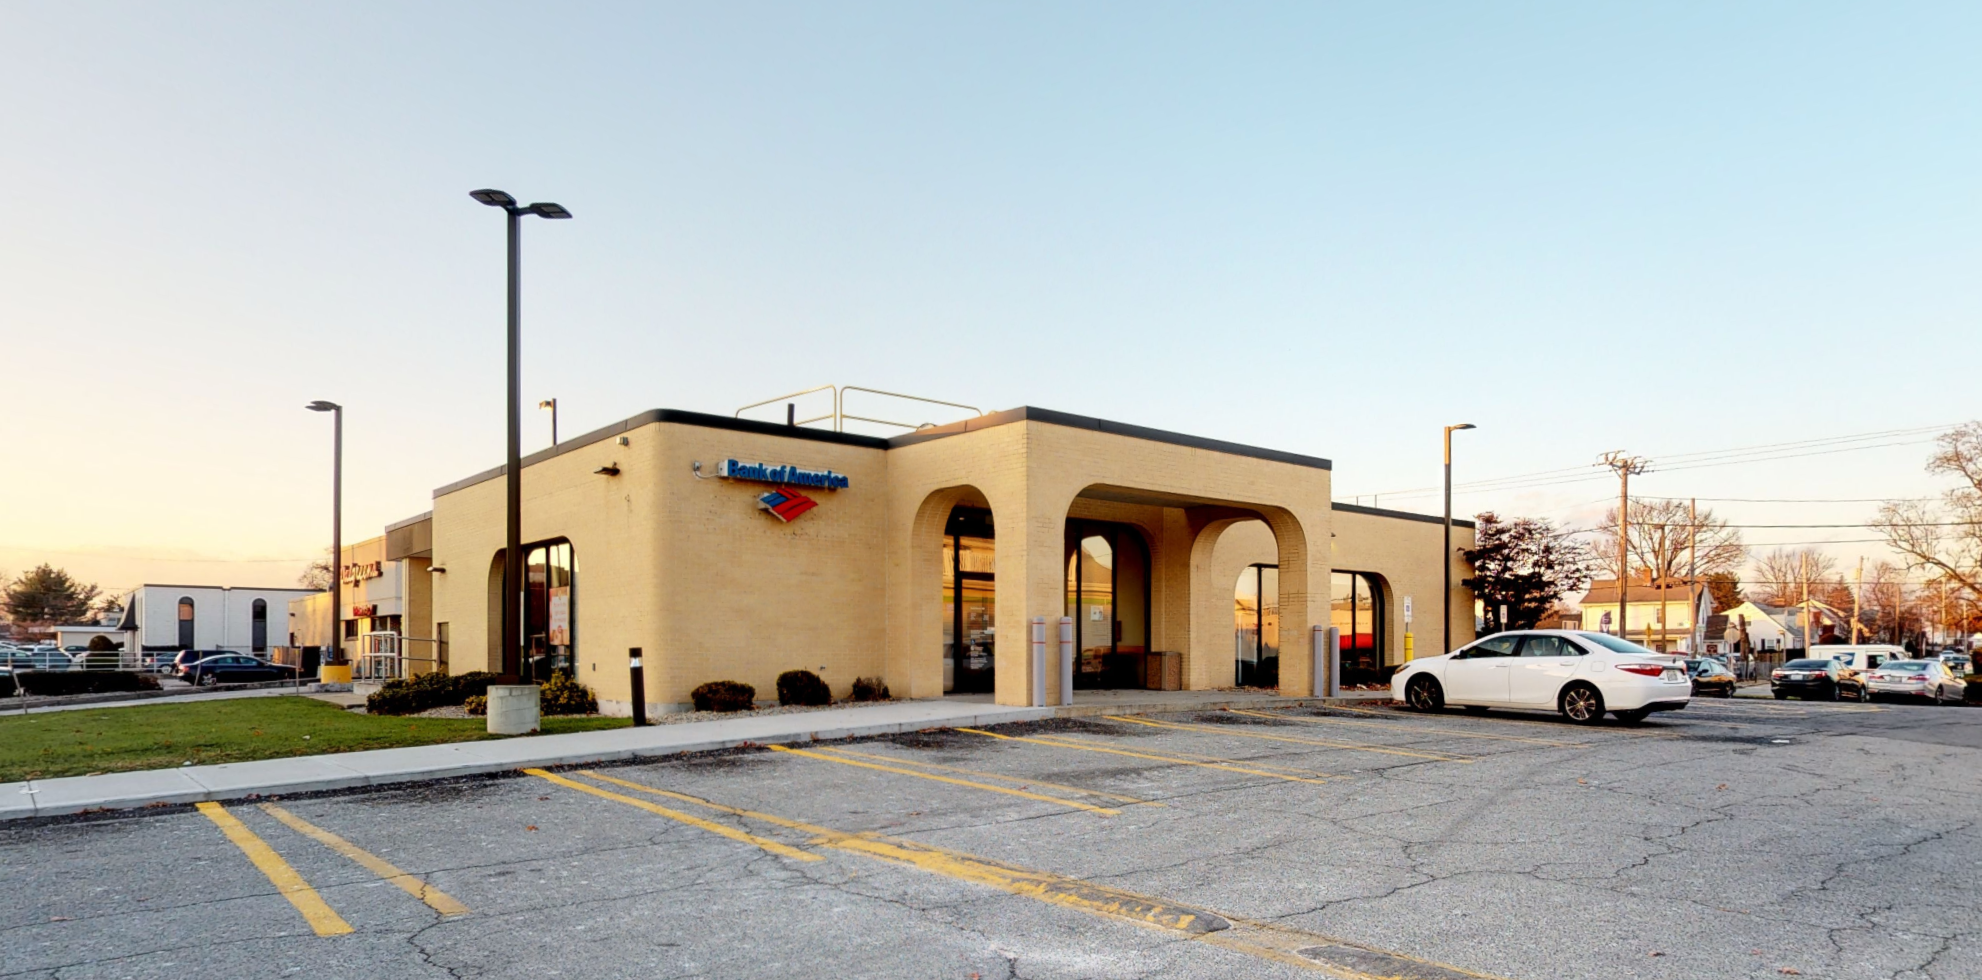 Bank of America financial center with drive-thru ATM | 1000 Park Ave, Cranston, RI 02910